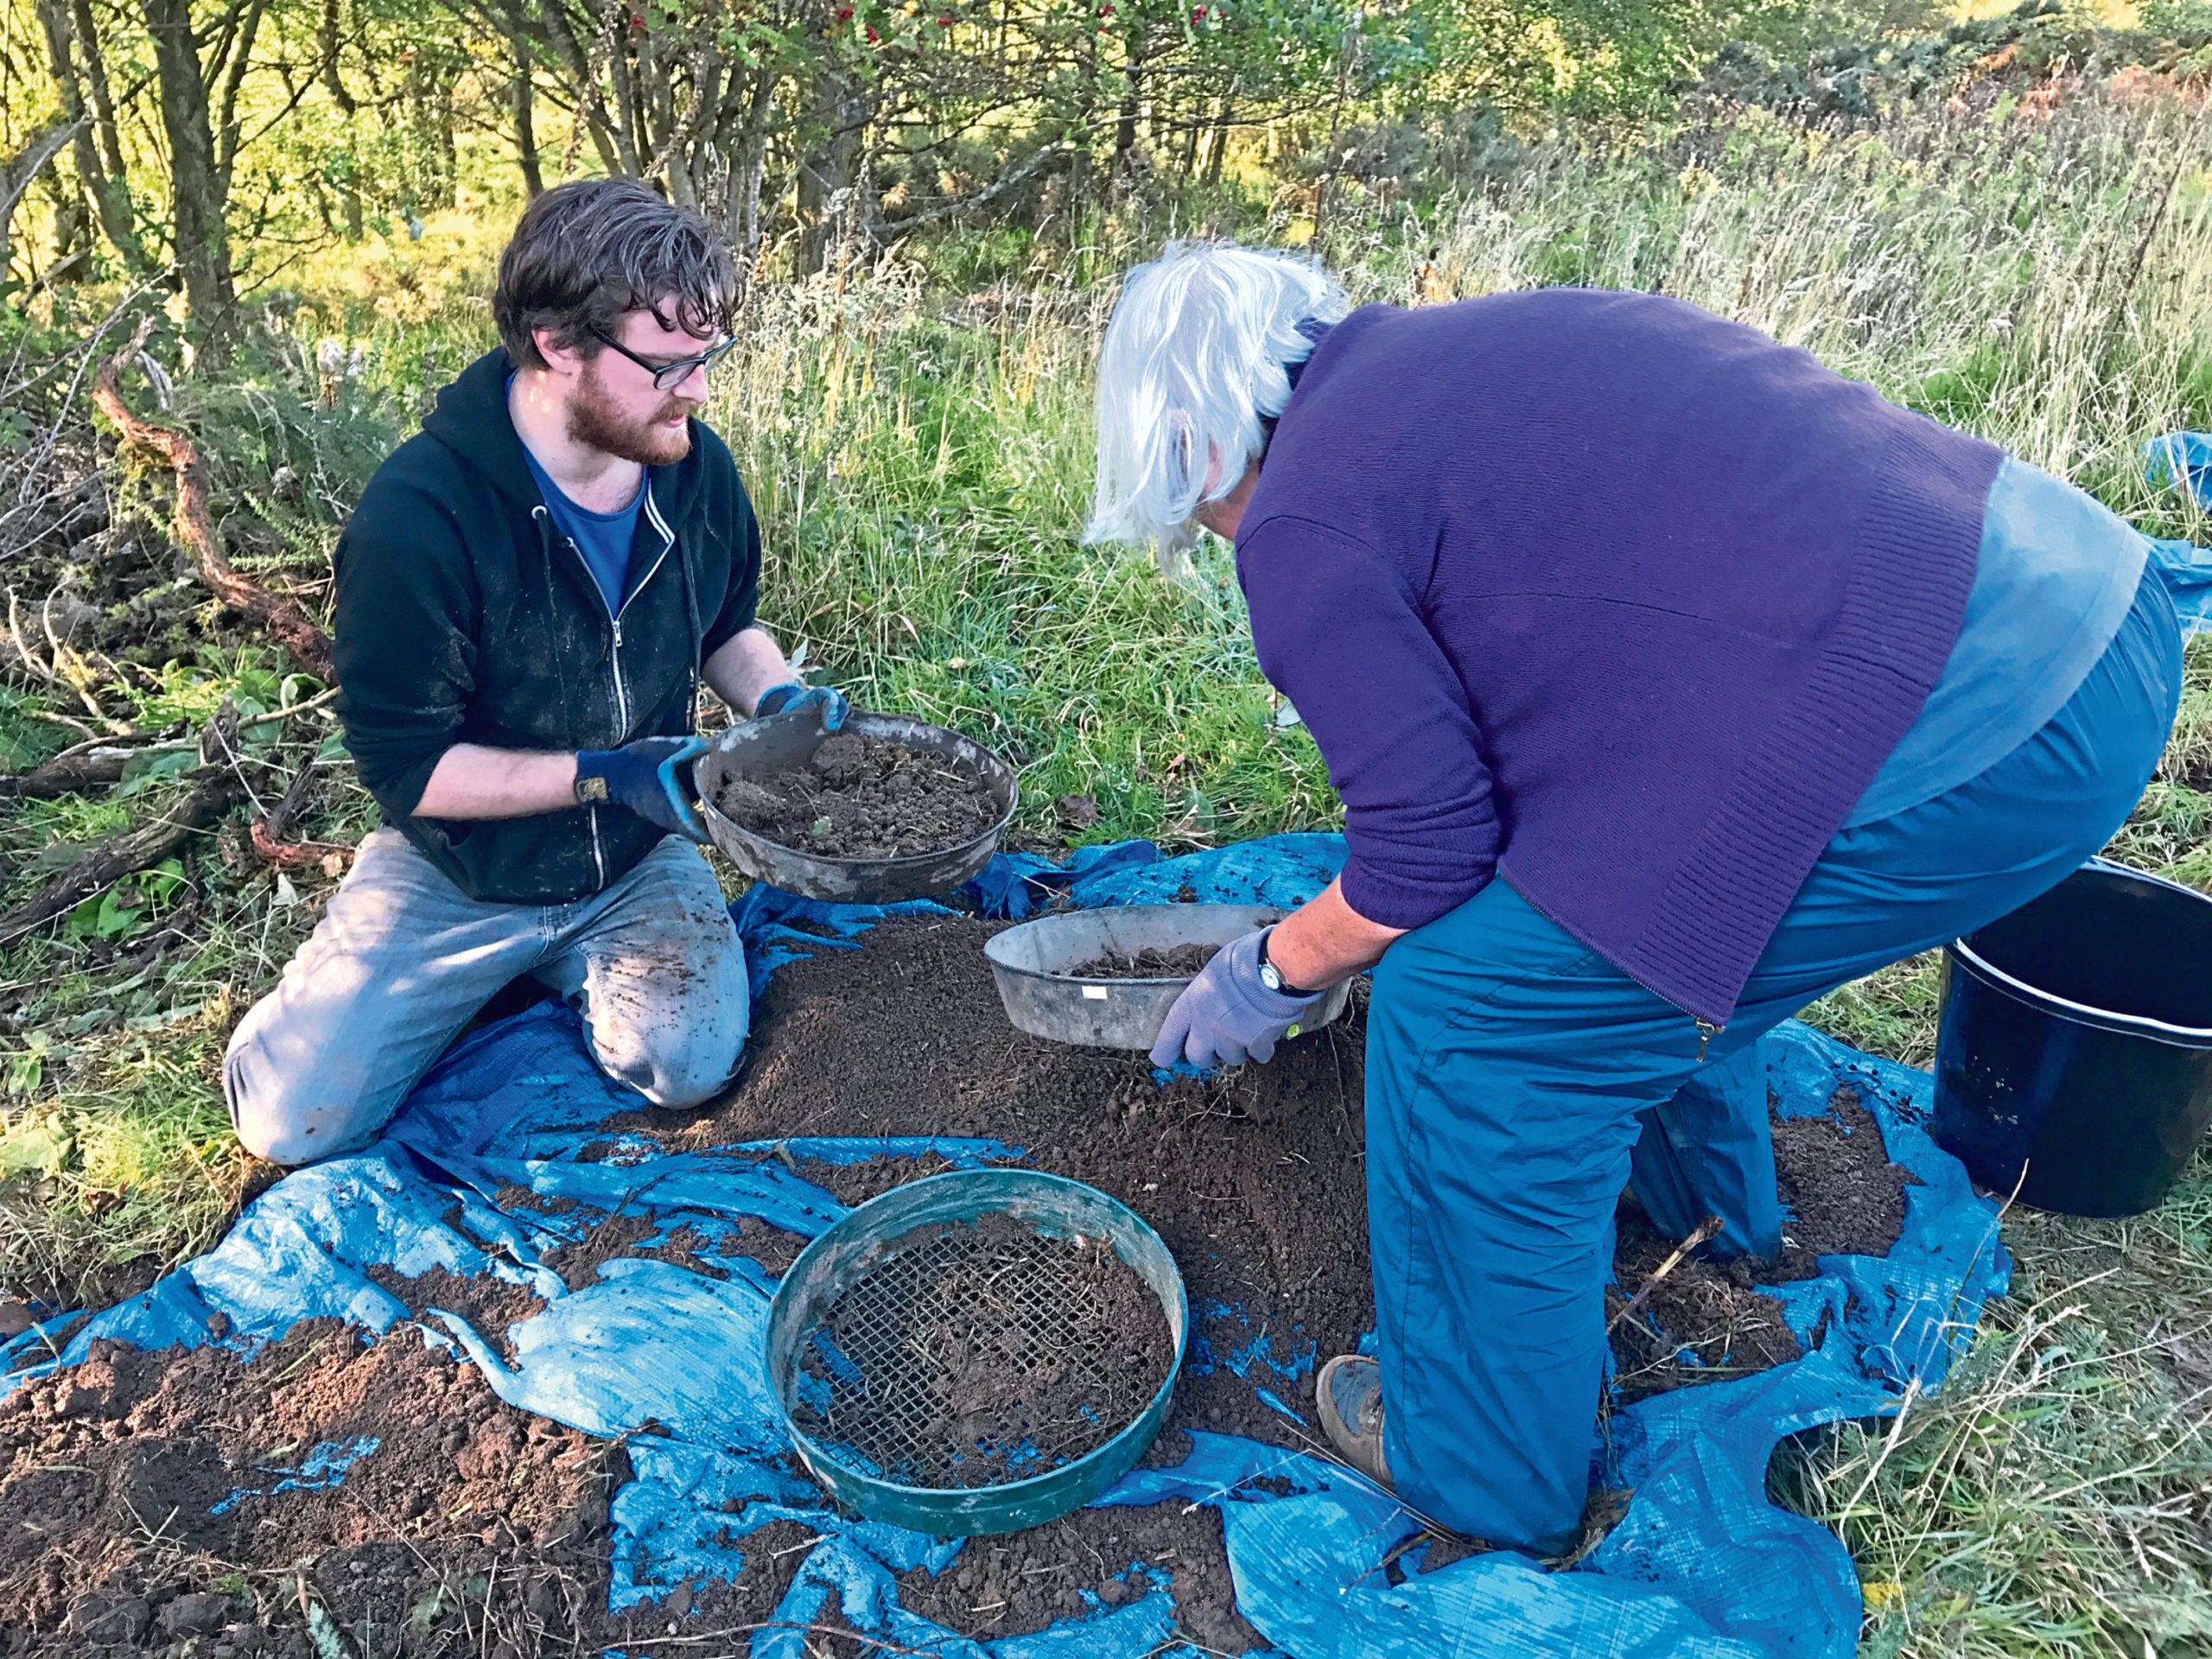 Mesolithic Deeside carrying out an excavation at a site in Aboyne